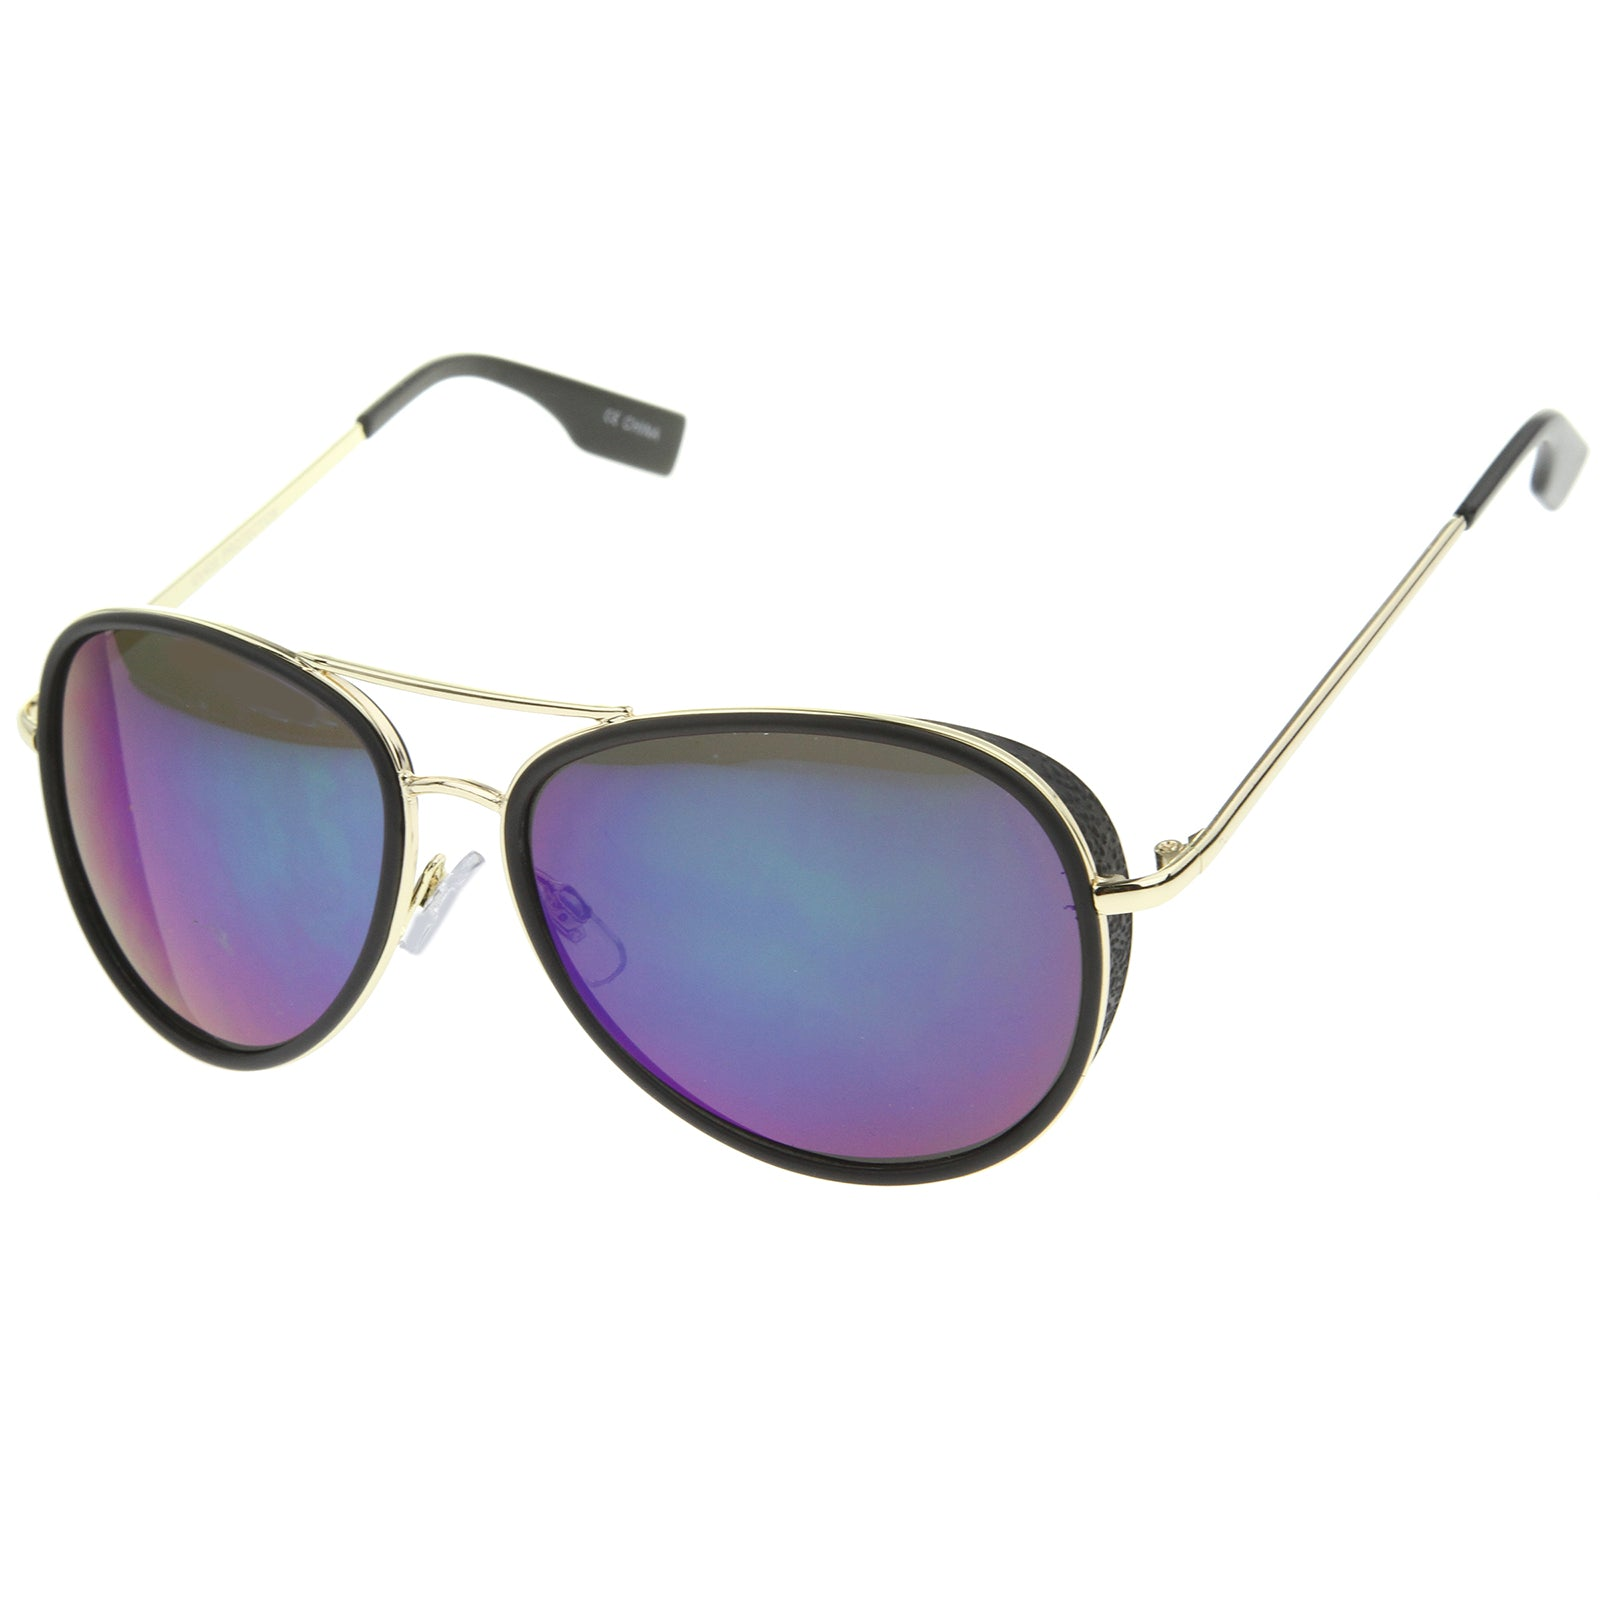 Mens Aviator Sunglasses With UV400 Protected Mirrored Lens - sunglass.la - 6